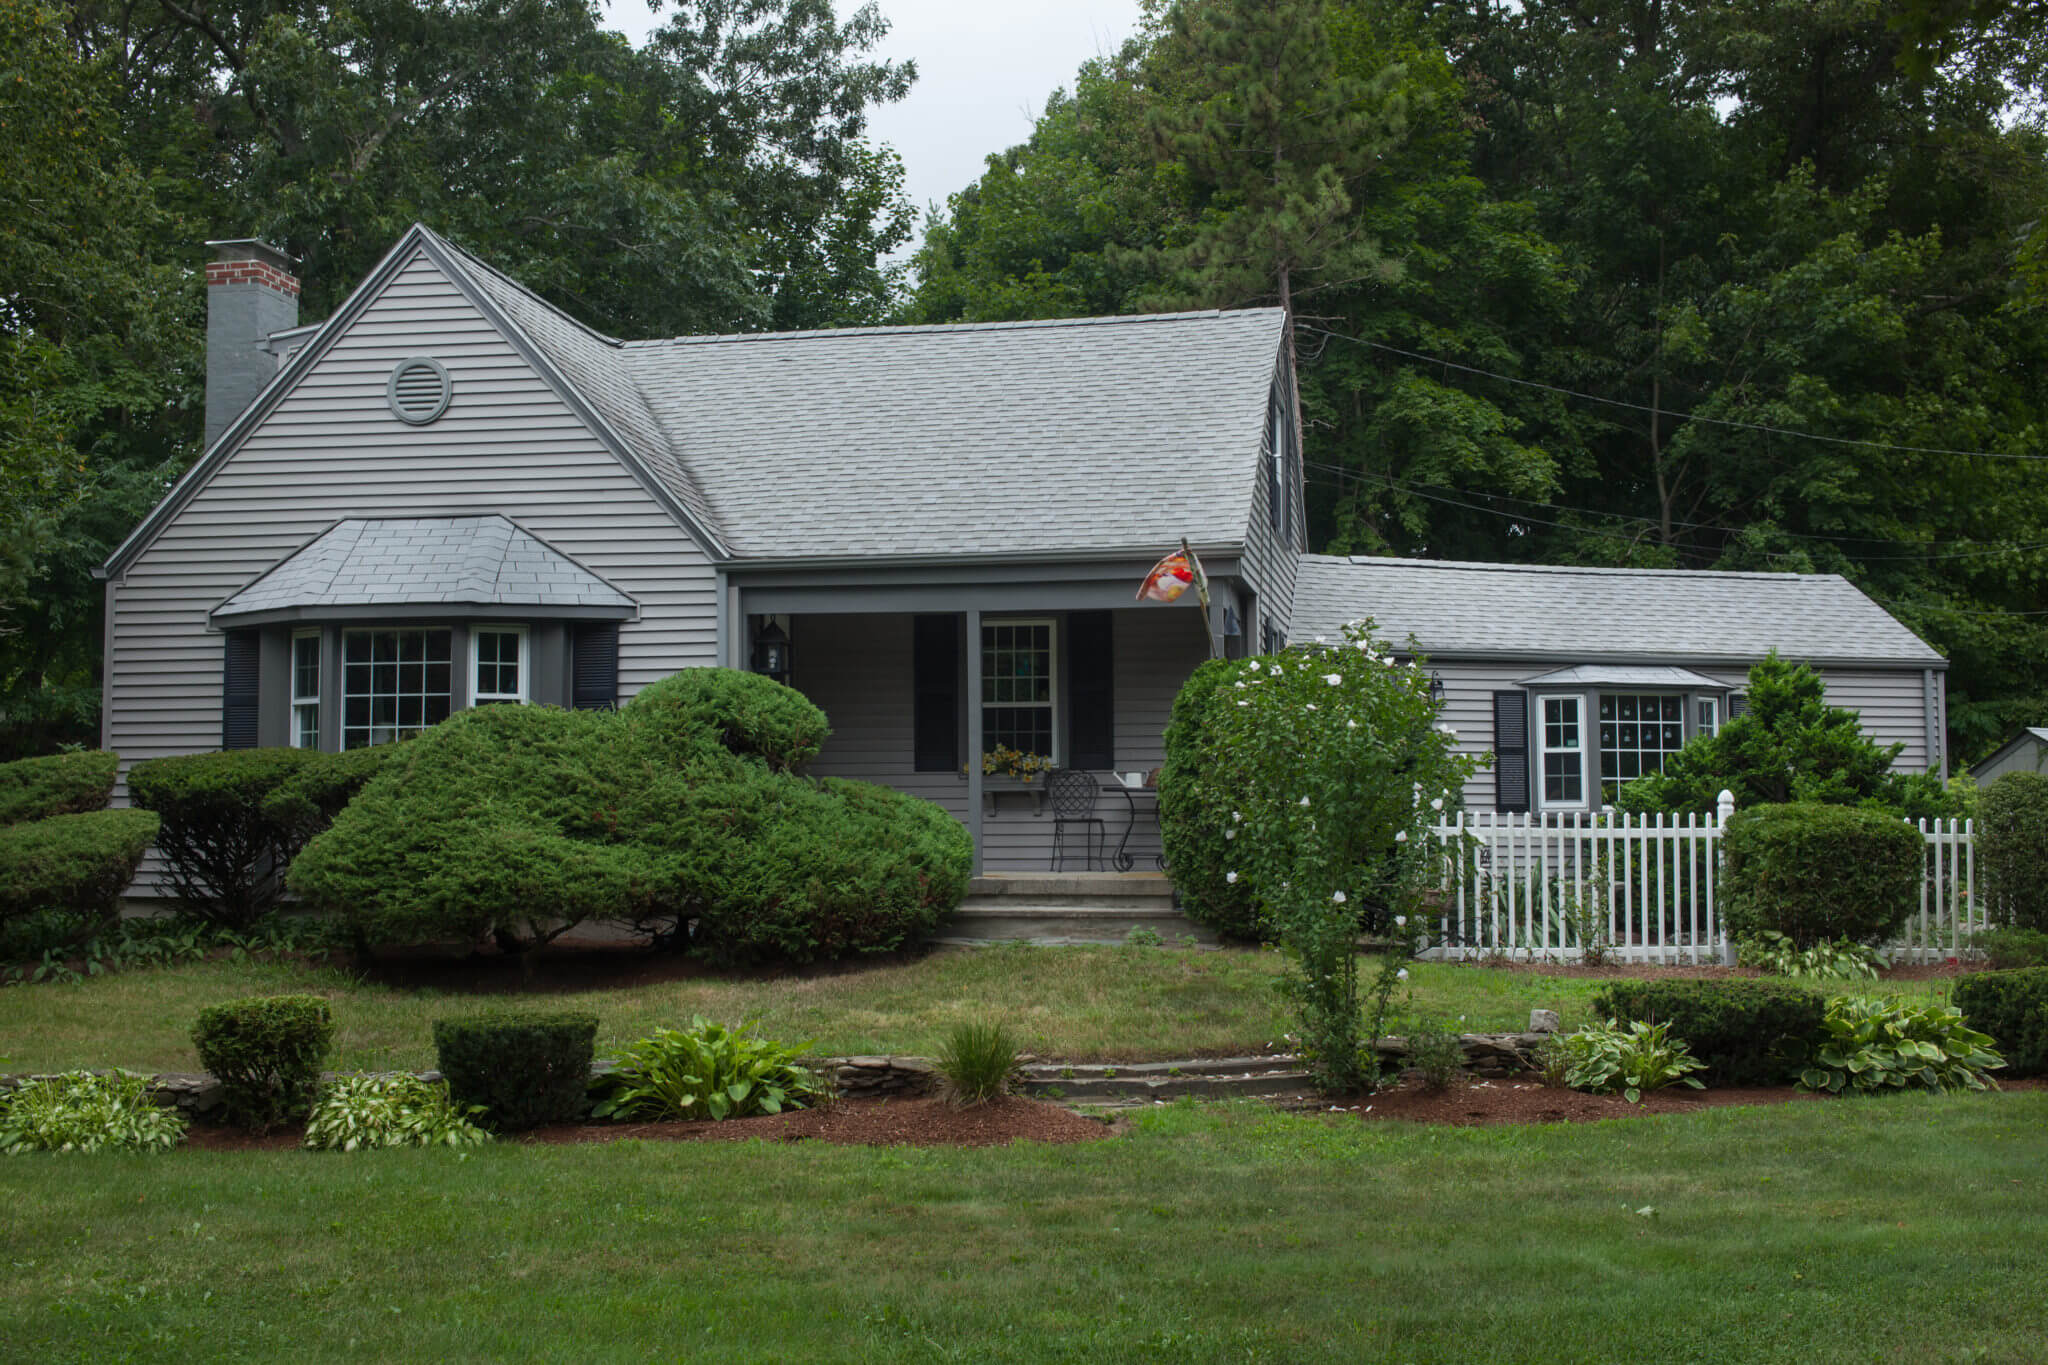 Roofing & Siding in Gray Installed on a Massachusetts Home by Marshall Building & Remodeling